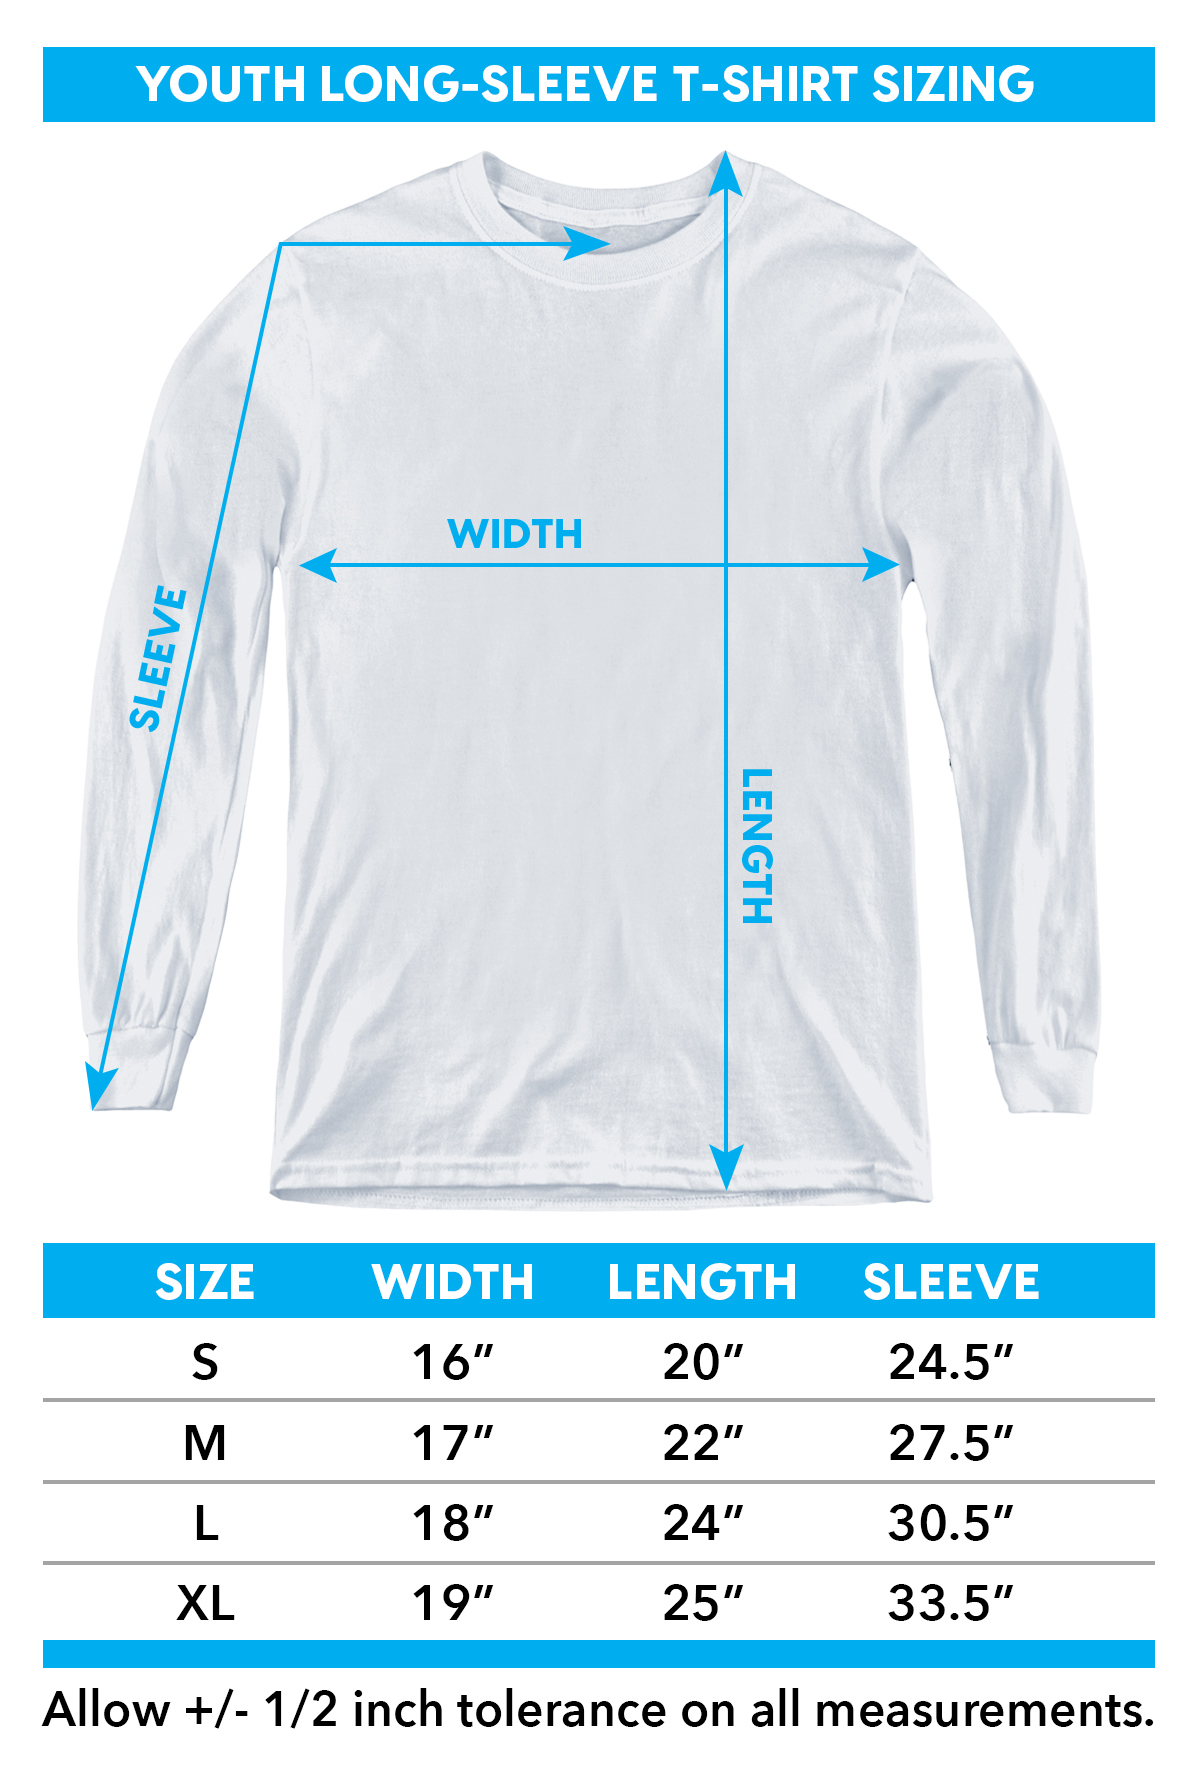 Sizing chart for Green Lantern #200 Cover Youth Long Sleeve T-Shirt TRV-GL108-YT